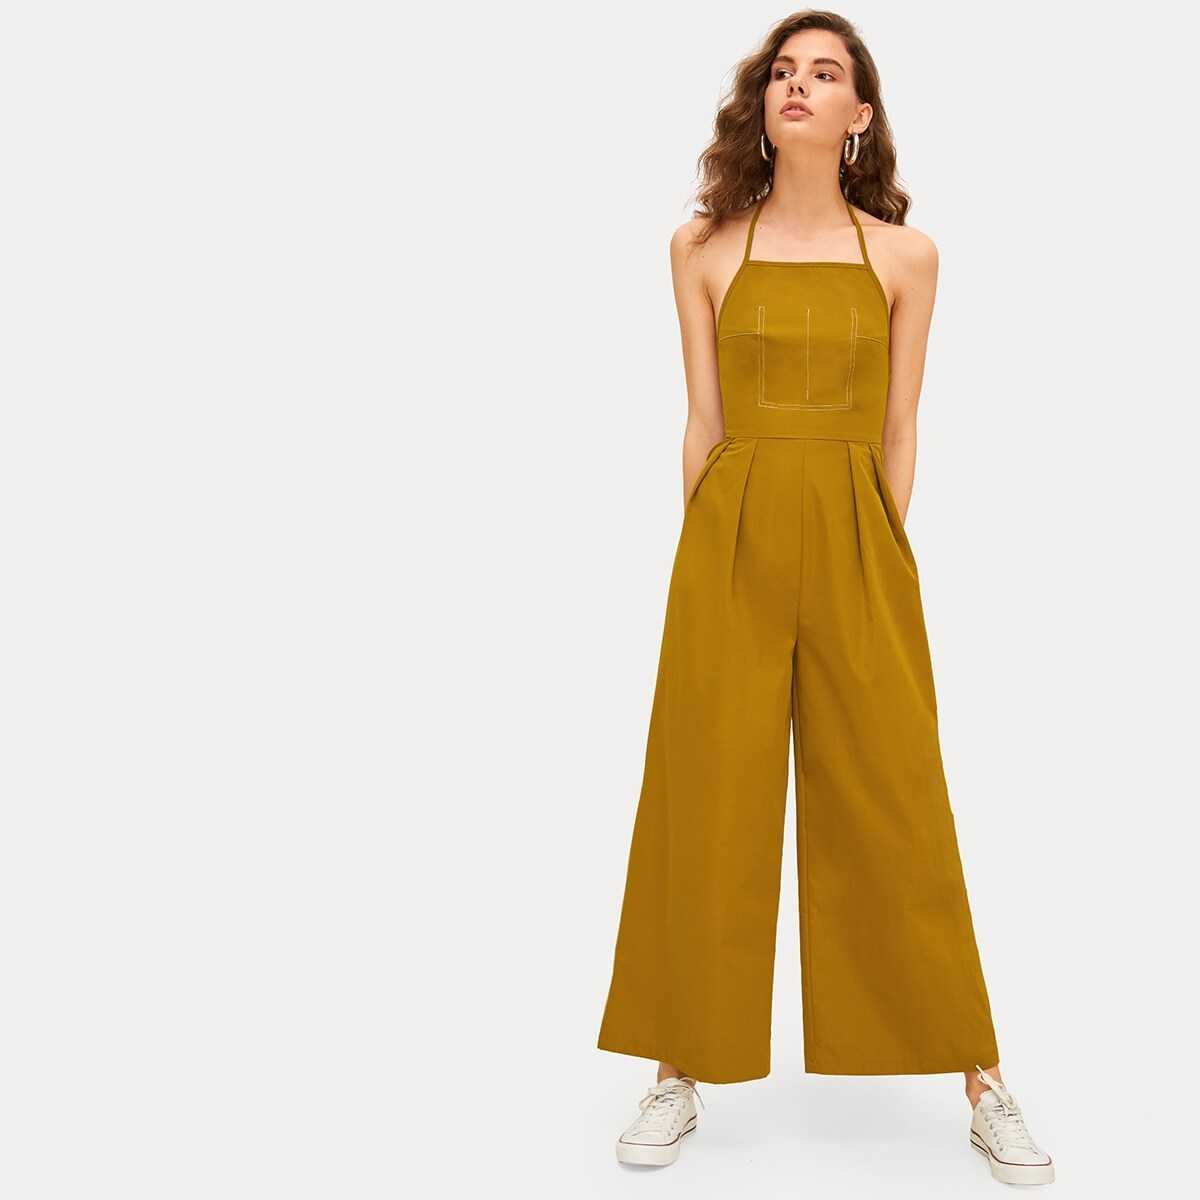 Backless Wide Leg Halter Jumpsuit in Yellow by ROMWE on GOOFASH